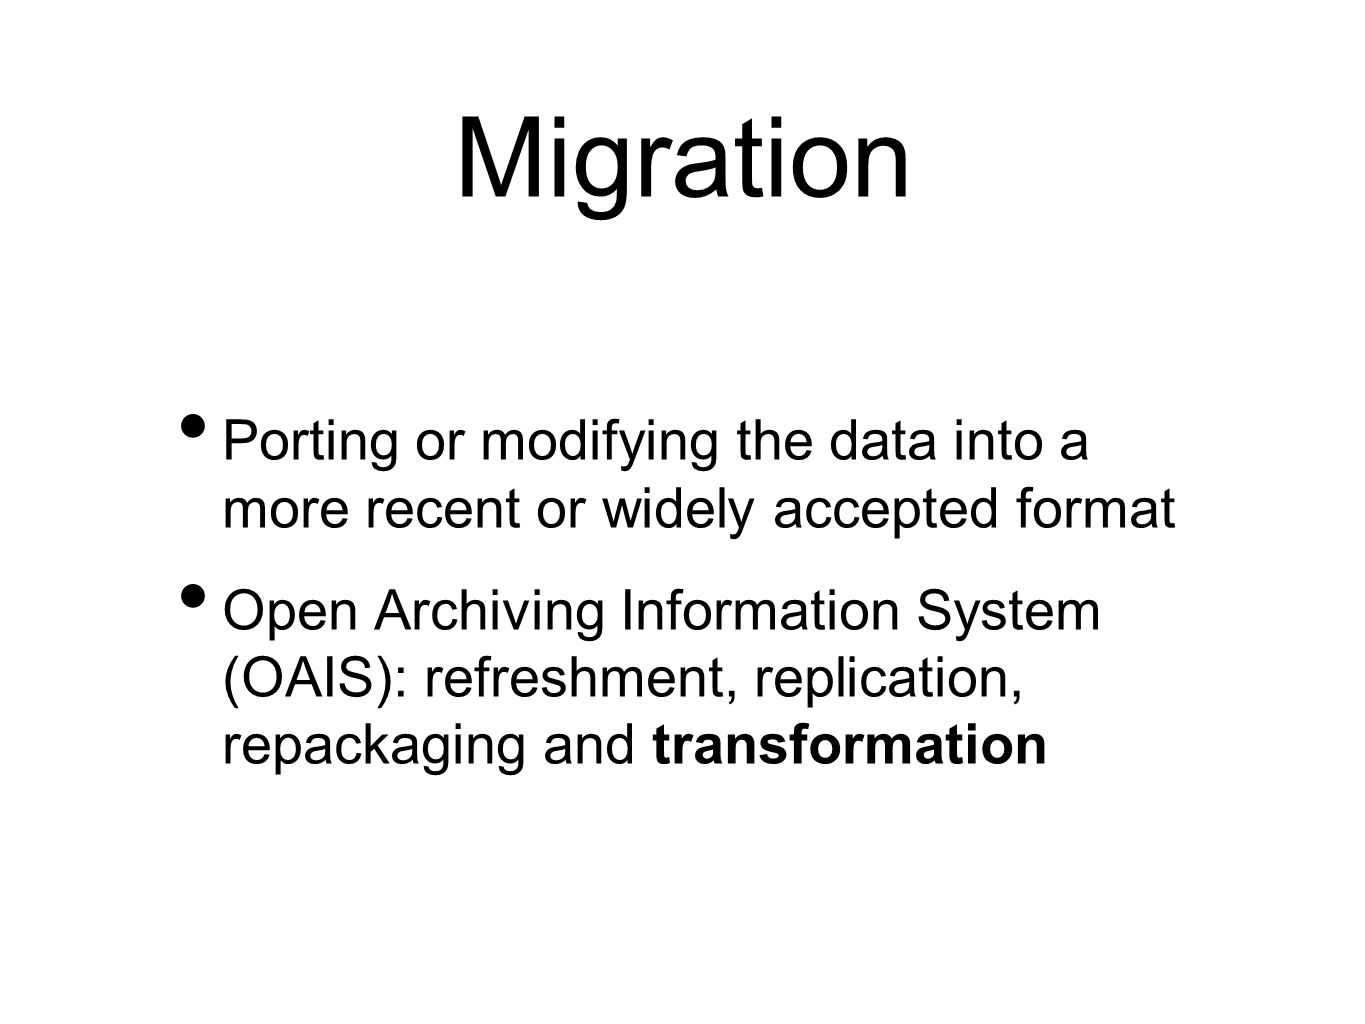 Migration Porting or modifying the data into a more recent or widely accepted format Open Archiving Information System (OAIS): refreshment, replication, repackaging and transformation